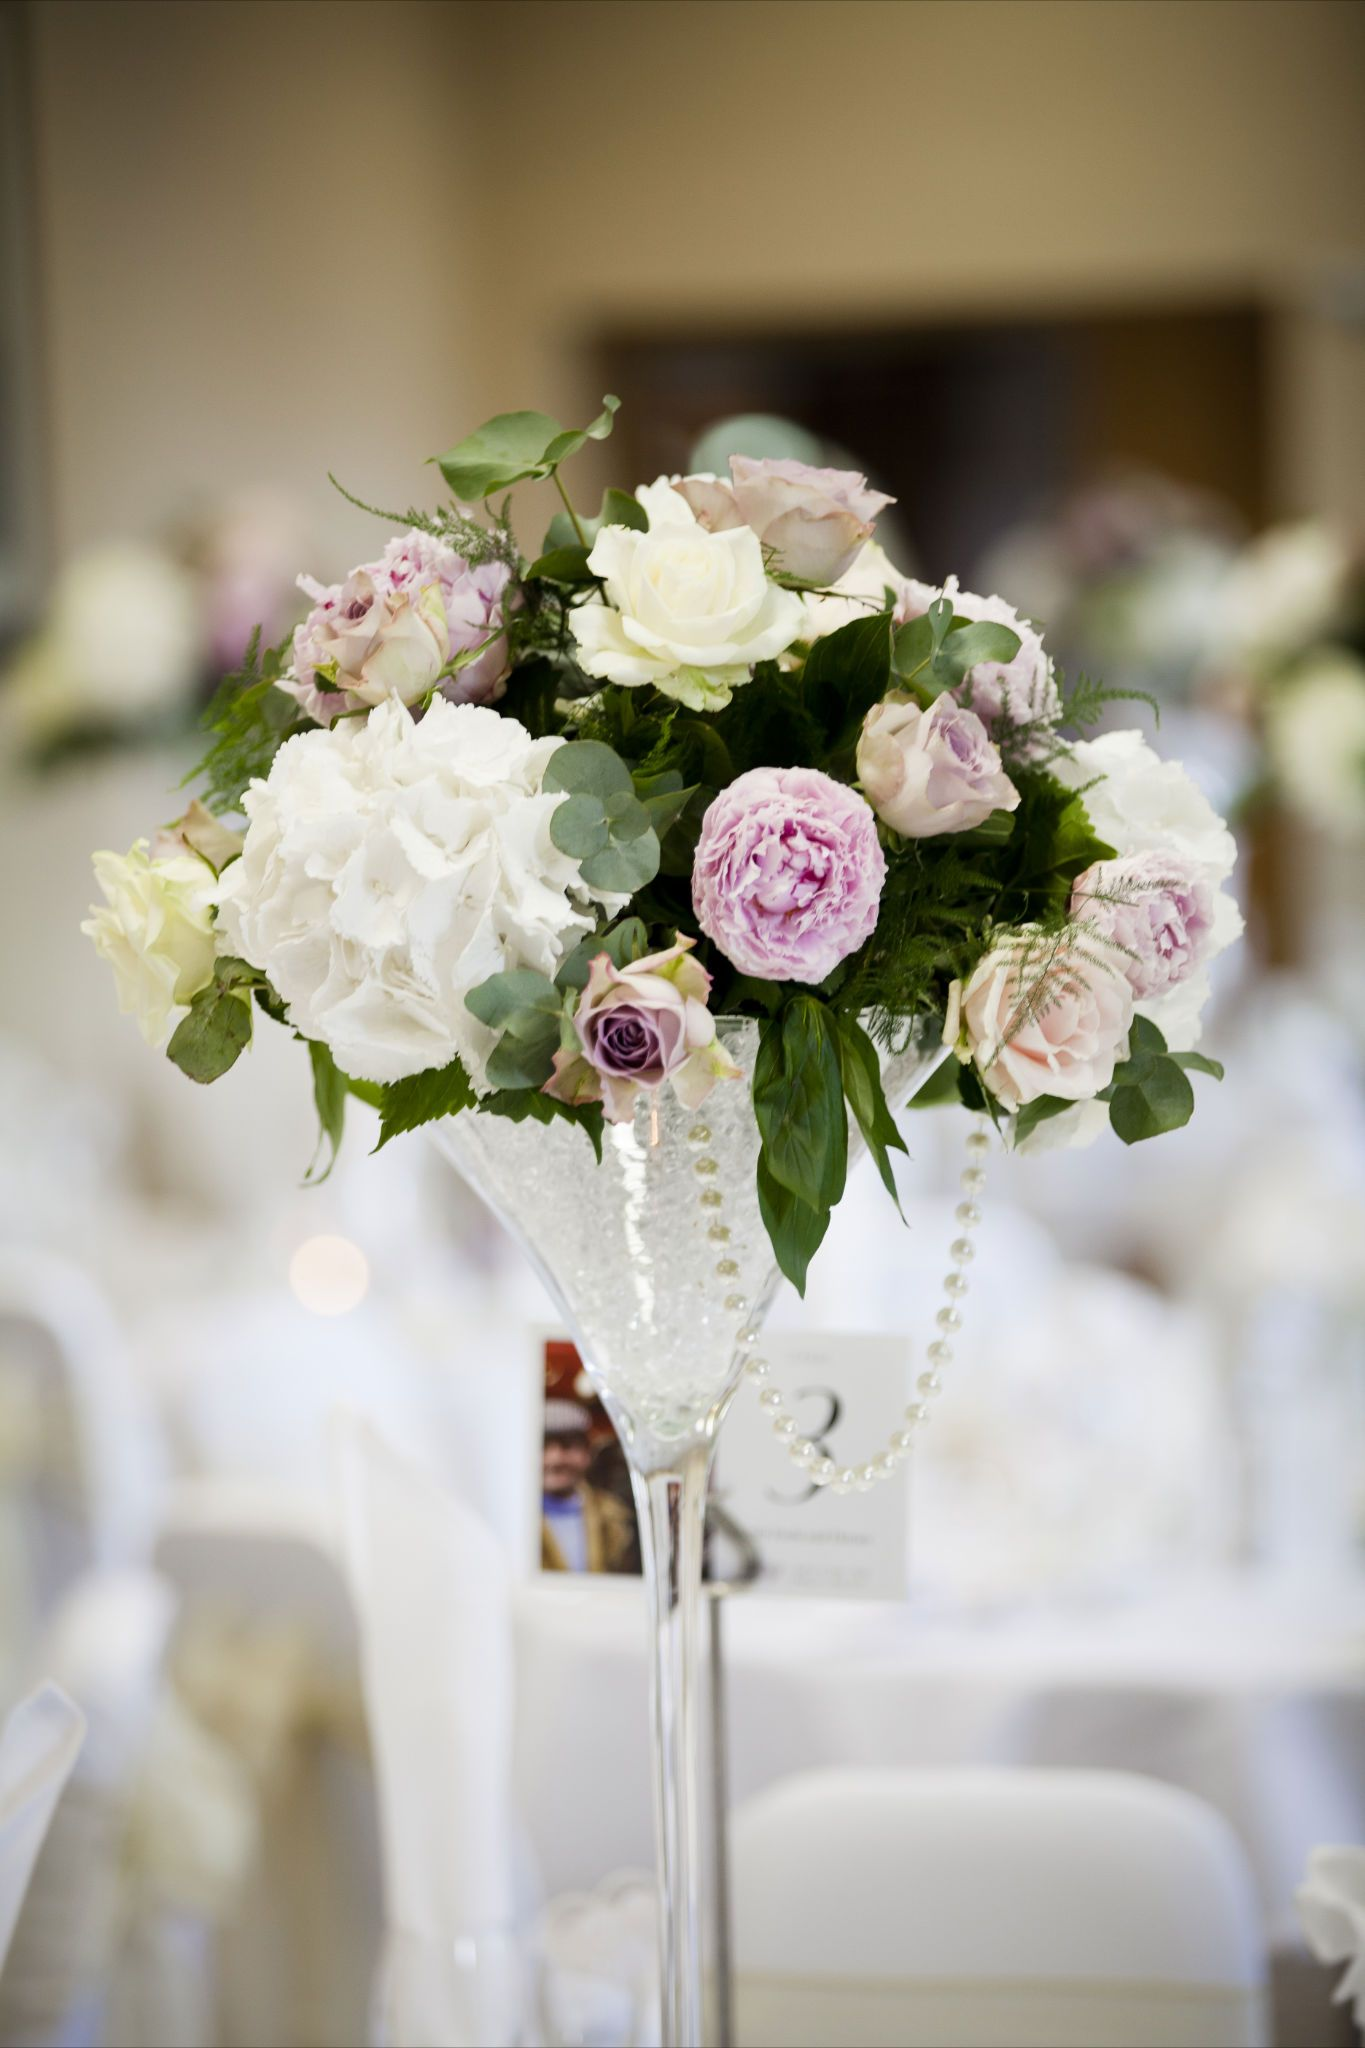 Ivory and pink Hydrangeas, Roses and Peonies martini vase centre ...